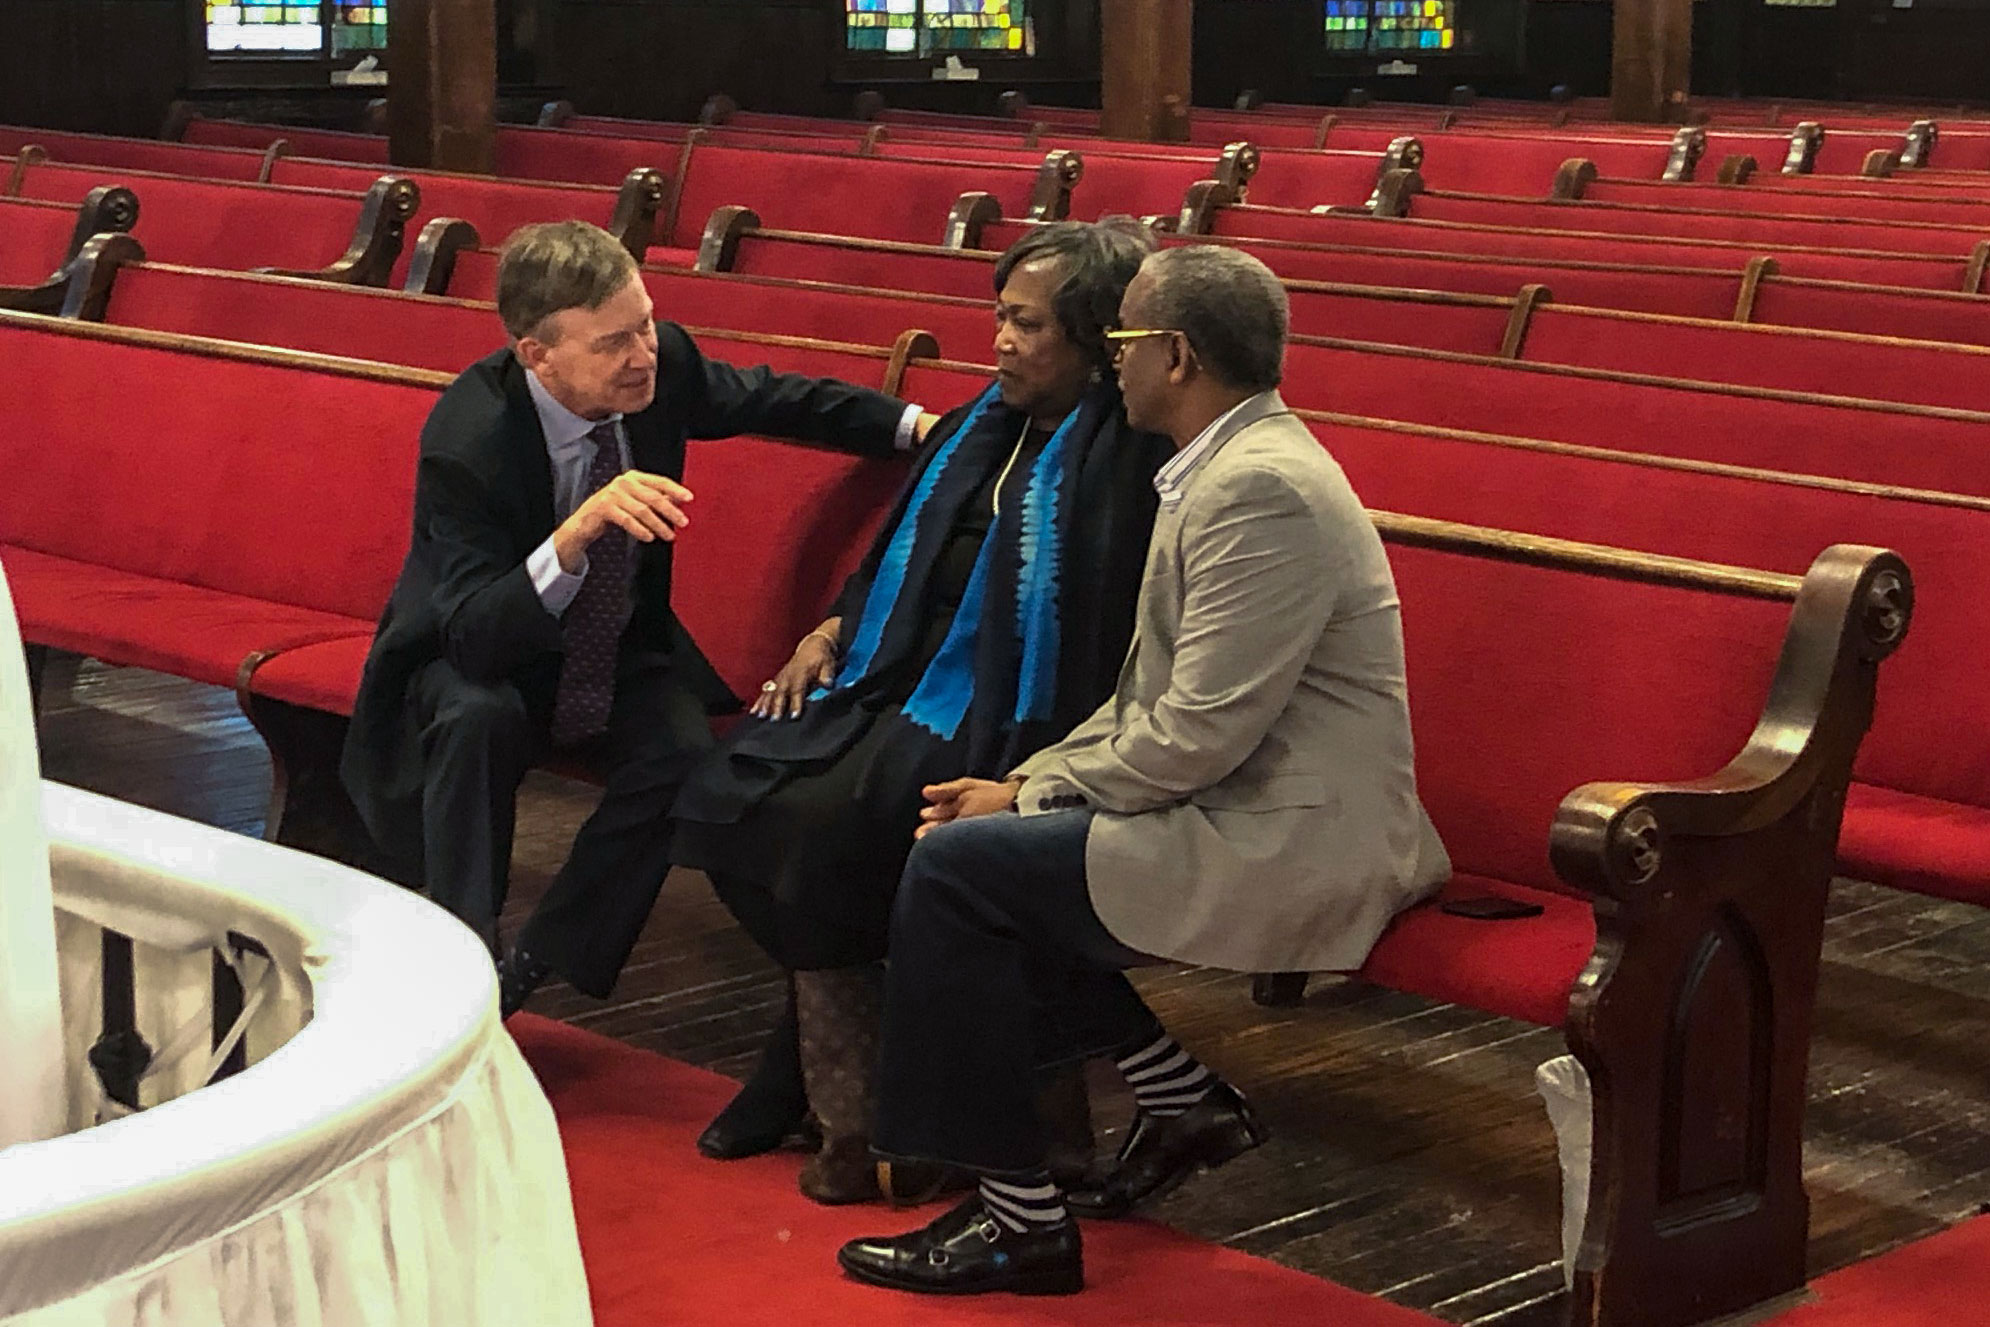 """<p style=""""color: rgb(64, 69, 64); background-color: rgb(255, 255, 255);"""">John Hickenlooper meets Polly Sheppard and the Rev. Anthony Thompson at t<span style=""""color: rgb(64, 69, 64); background-color: rgb(255, 255, 255);"""">he Emmanuel African Methodist Episcopal </span><span style=""""color: rgb(64, 69, 64); background-color: rgb(255, 255, 255);"""">Church in</span>Charleston, S.C., on Saturday, April 6, 2019.Thompson's wife was one of nine people killed by a white supremacist in a2015 shooting at the church. Sheppard was in the church during the attack but survived.</p>"""